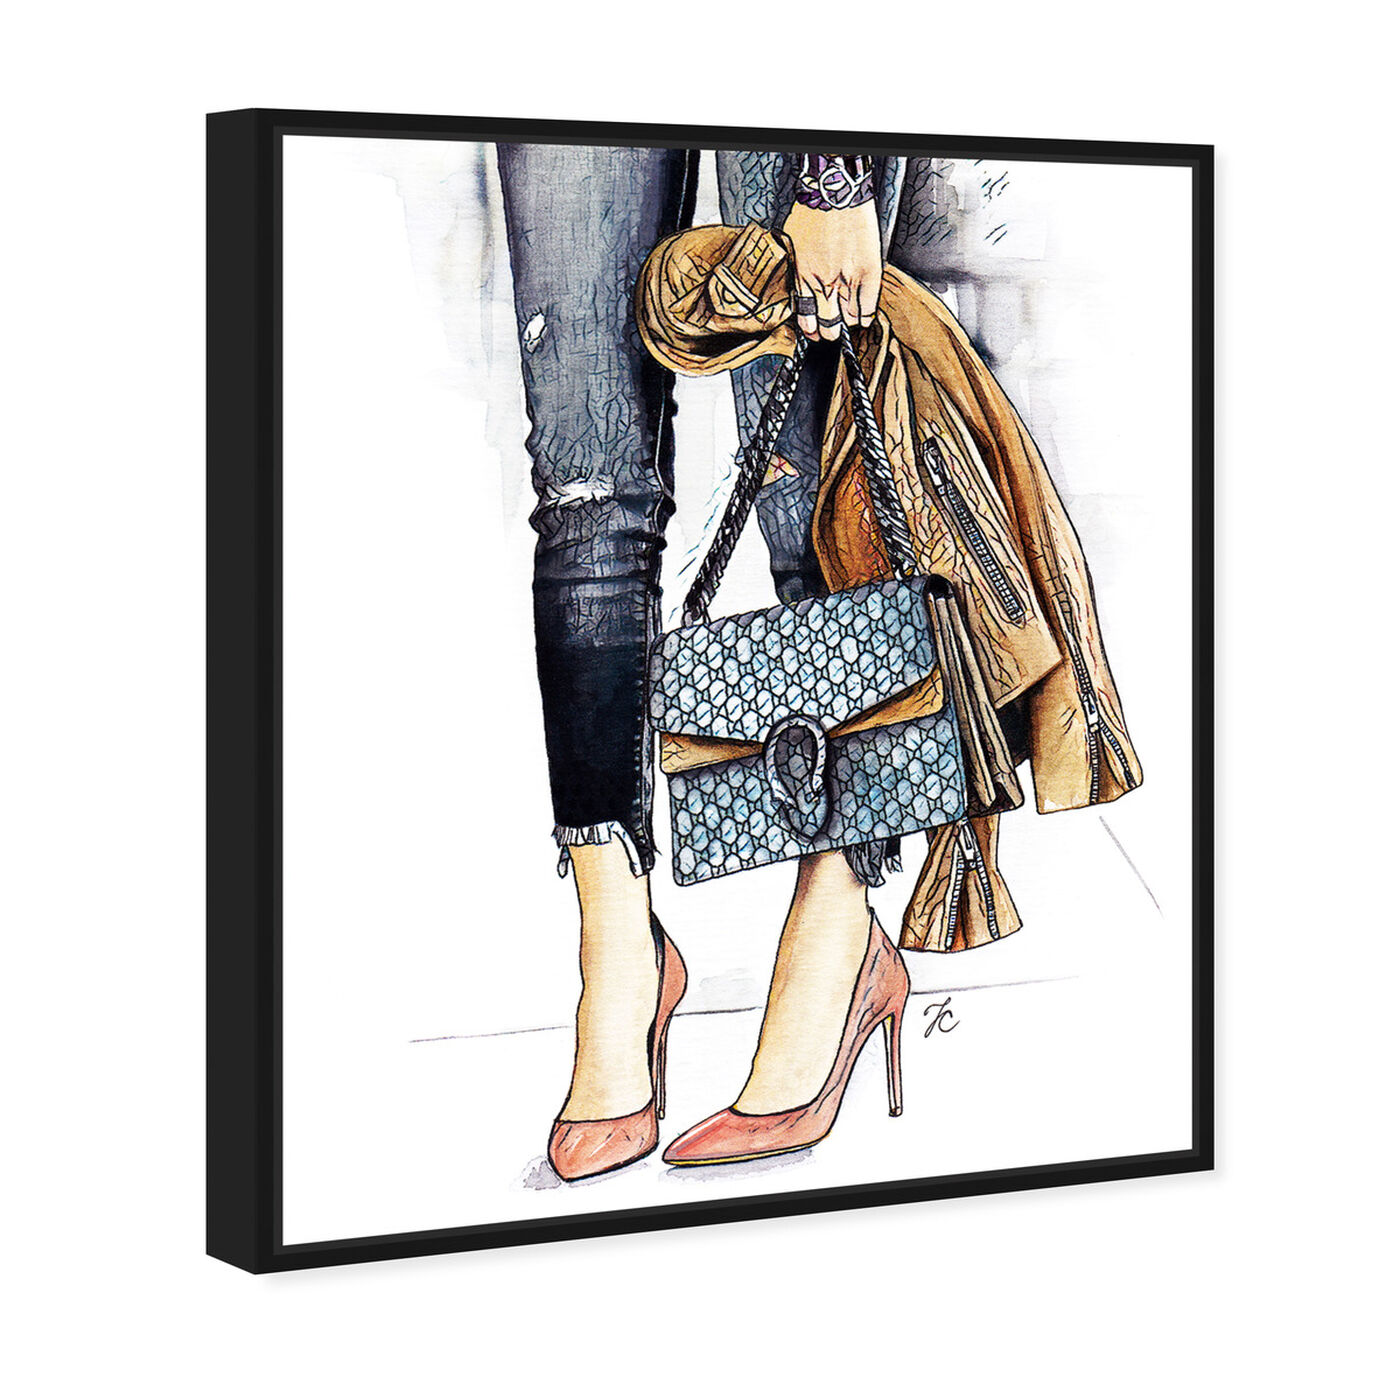 Angled view of Doll Memories - Fashion Street Glam featuring fashion and glam and outfits art.